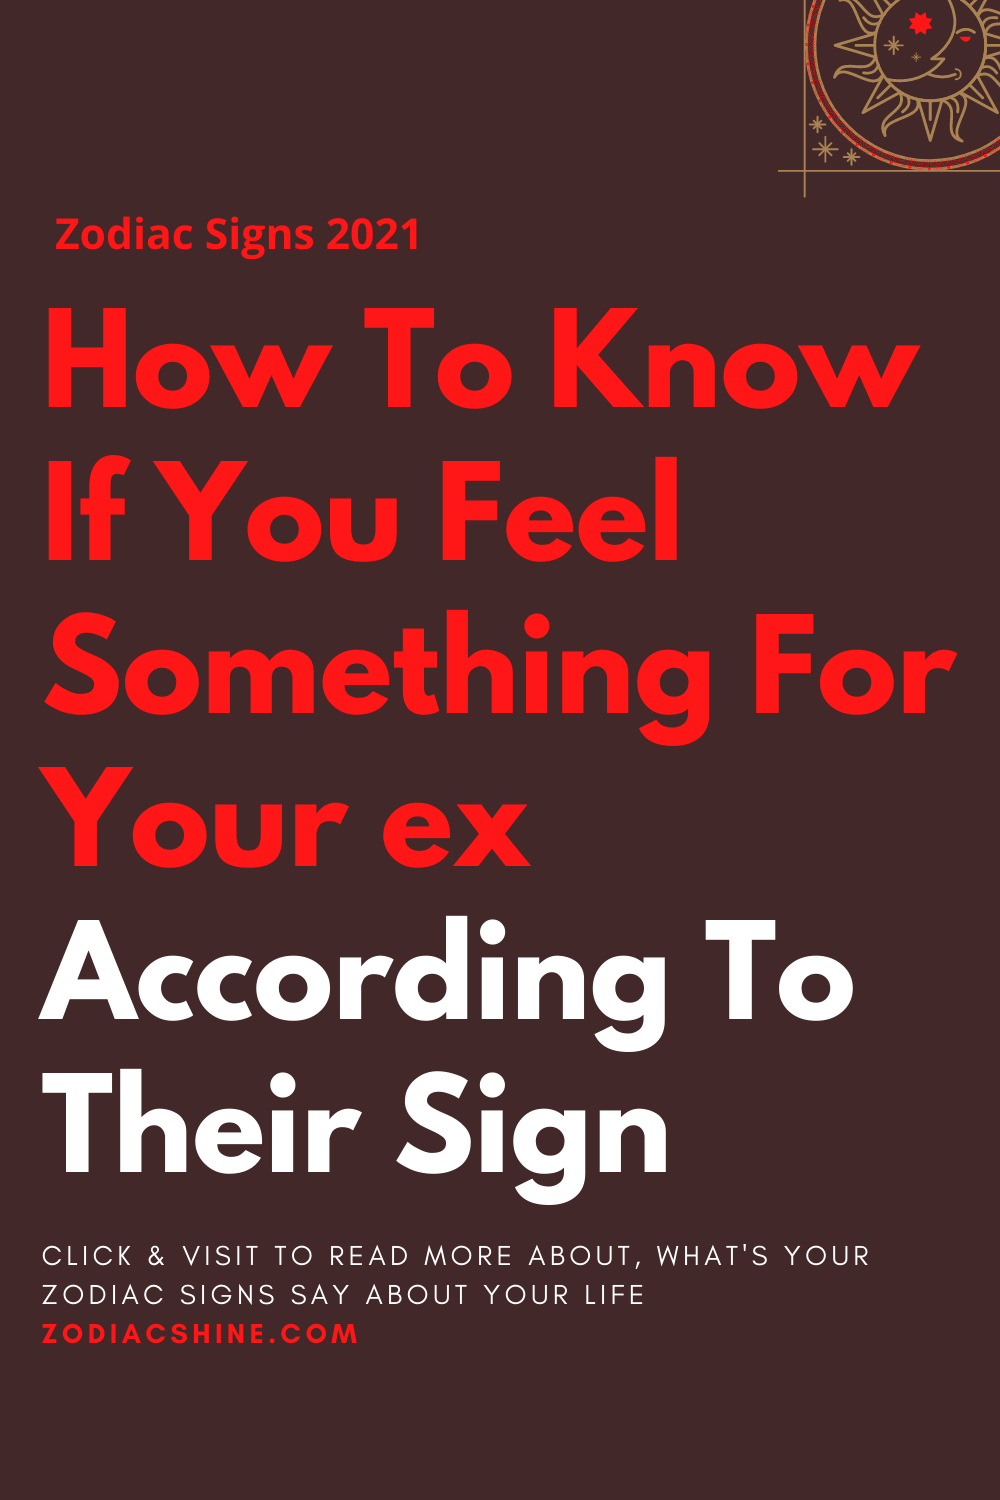 How To Know If You Feel Something For Your ex According To Their Sign